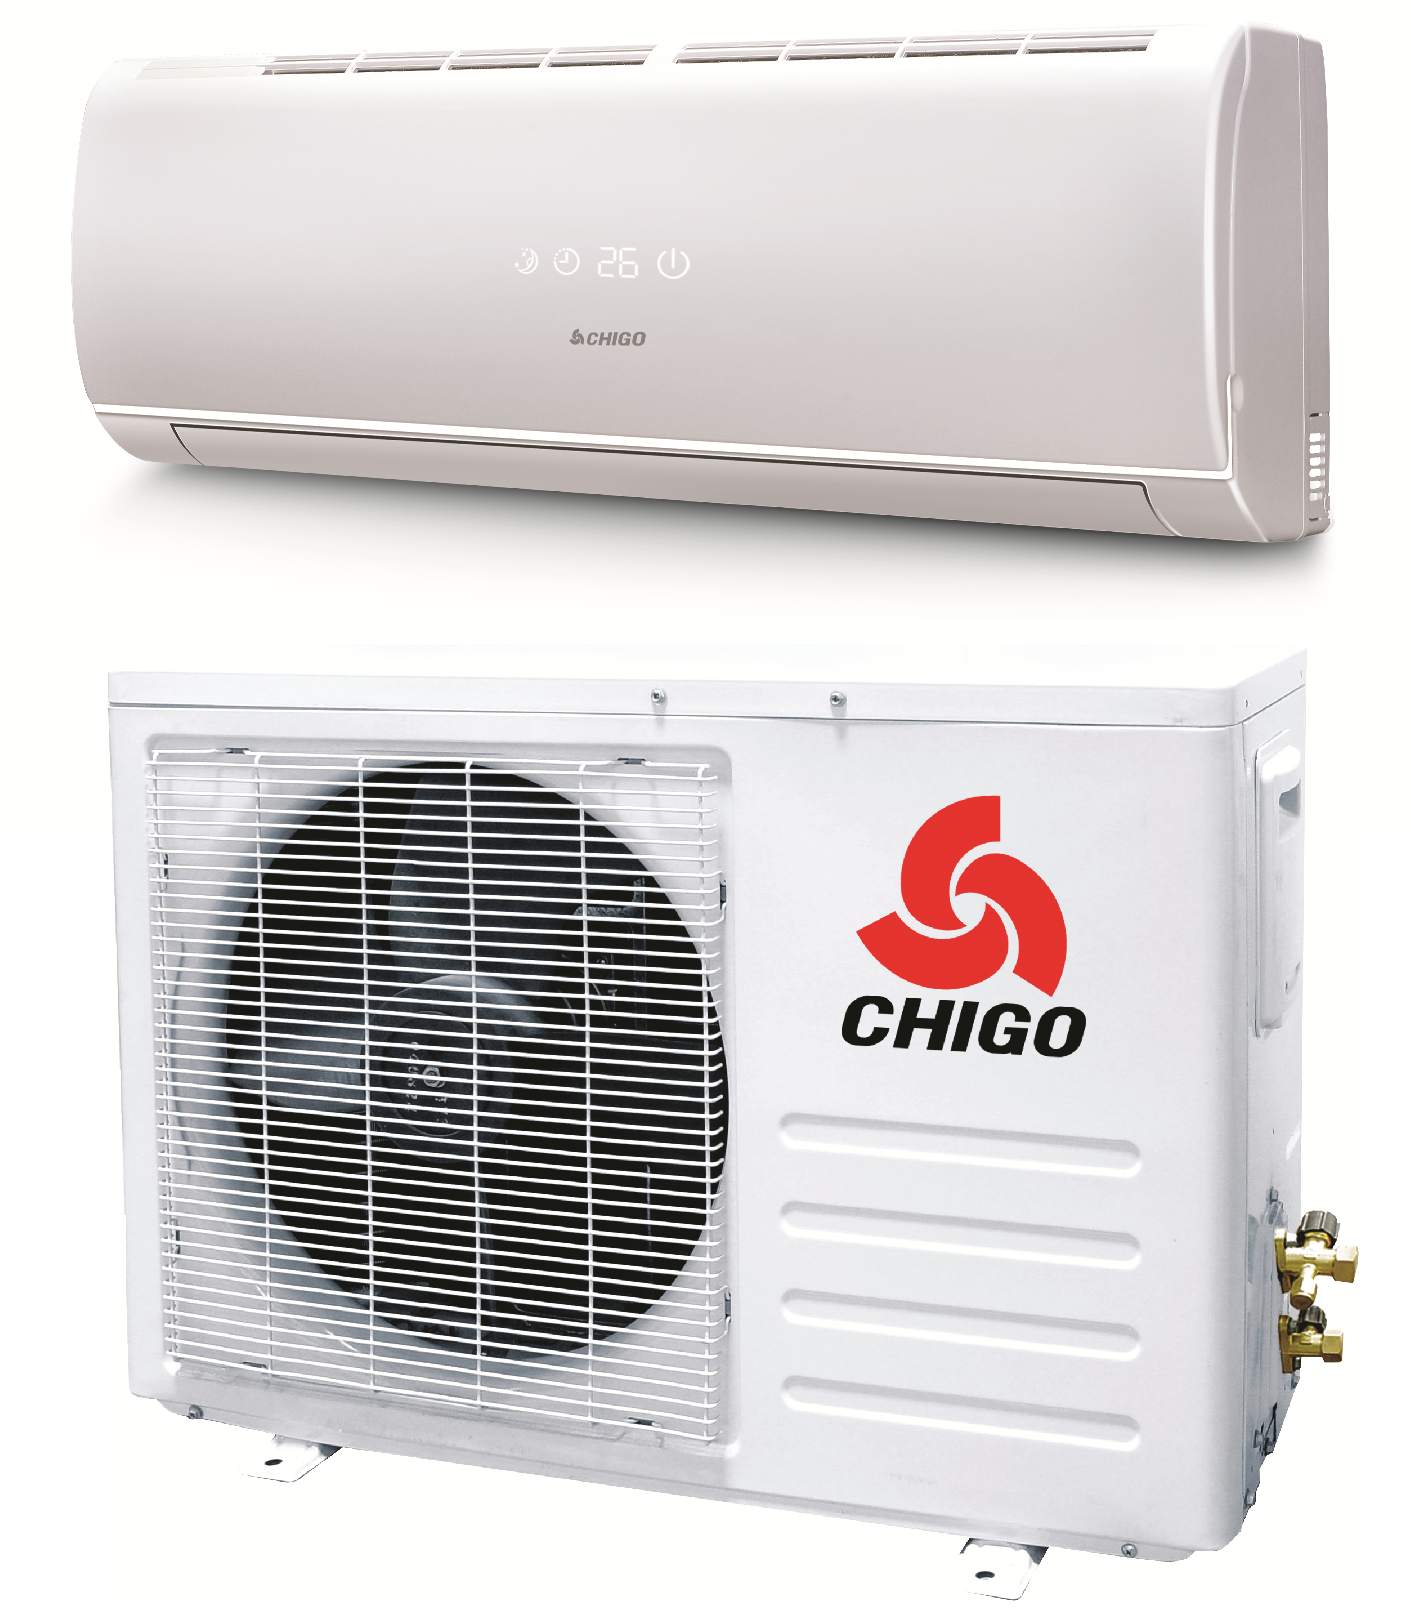 Chigo 18000 Btu 19 Seer Mini Split Heat Pump Air Conditioner #B41C17